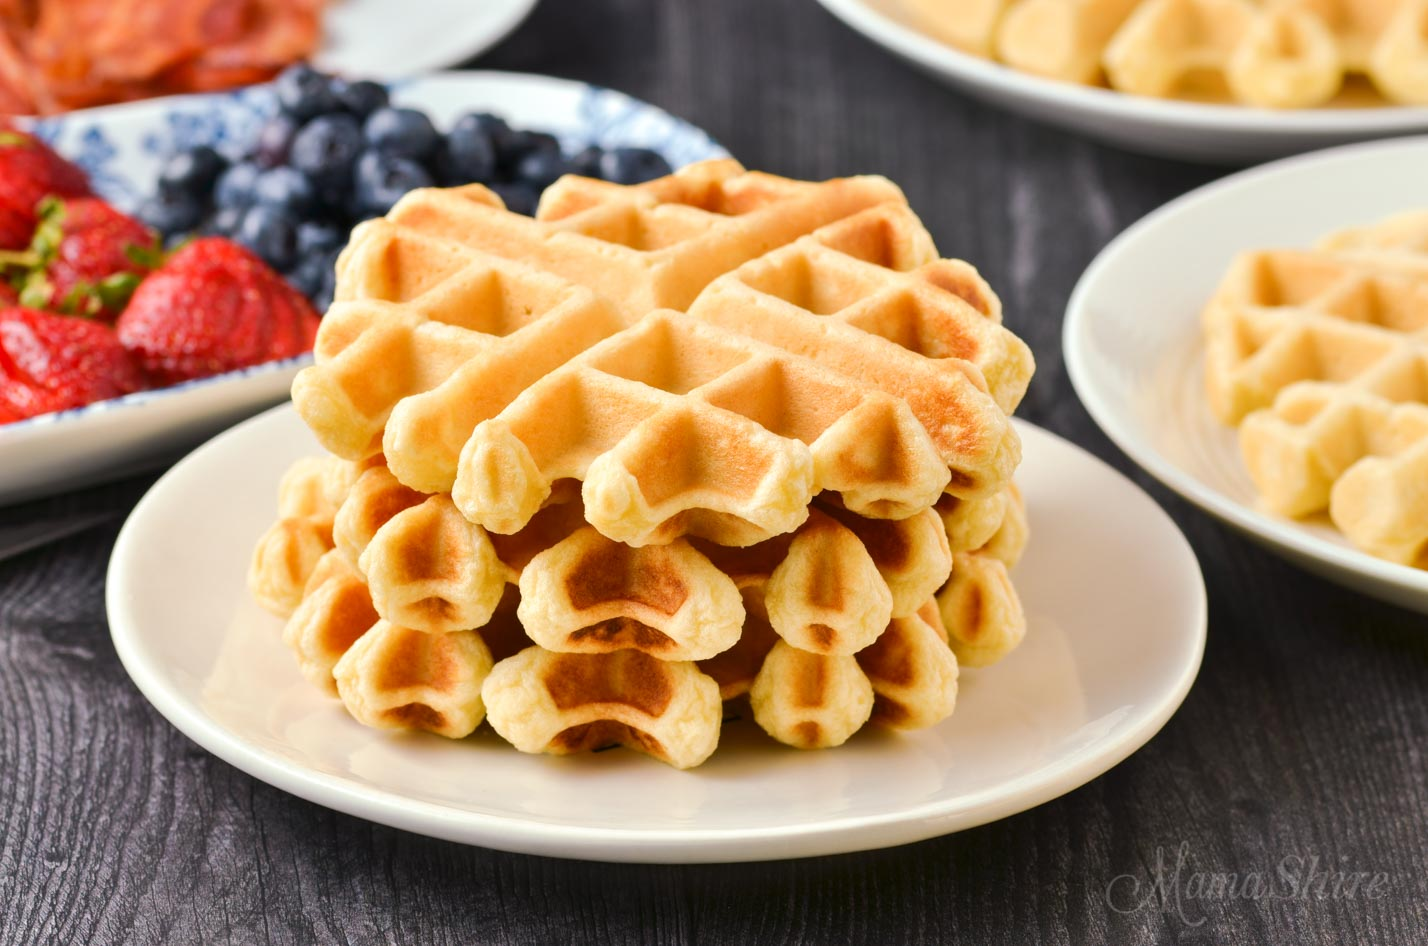 A stack of gluten-free Belgian waffles.